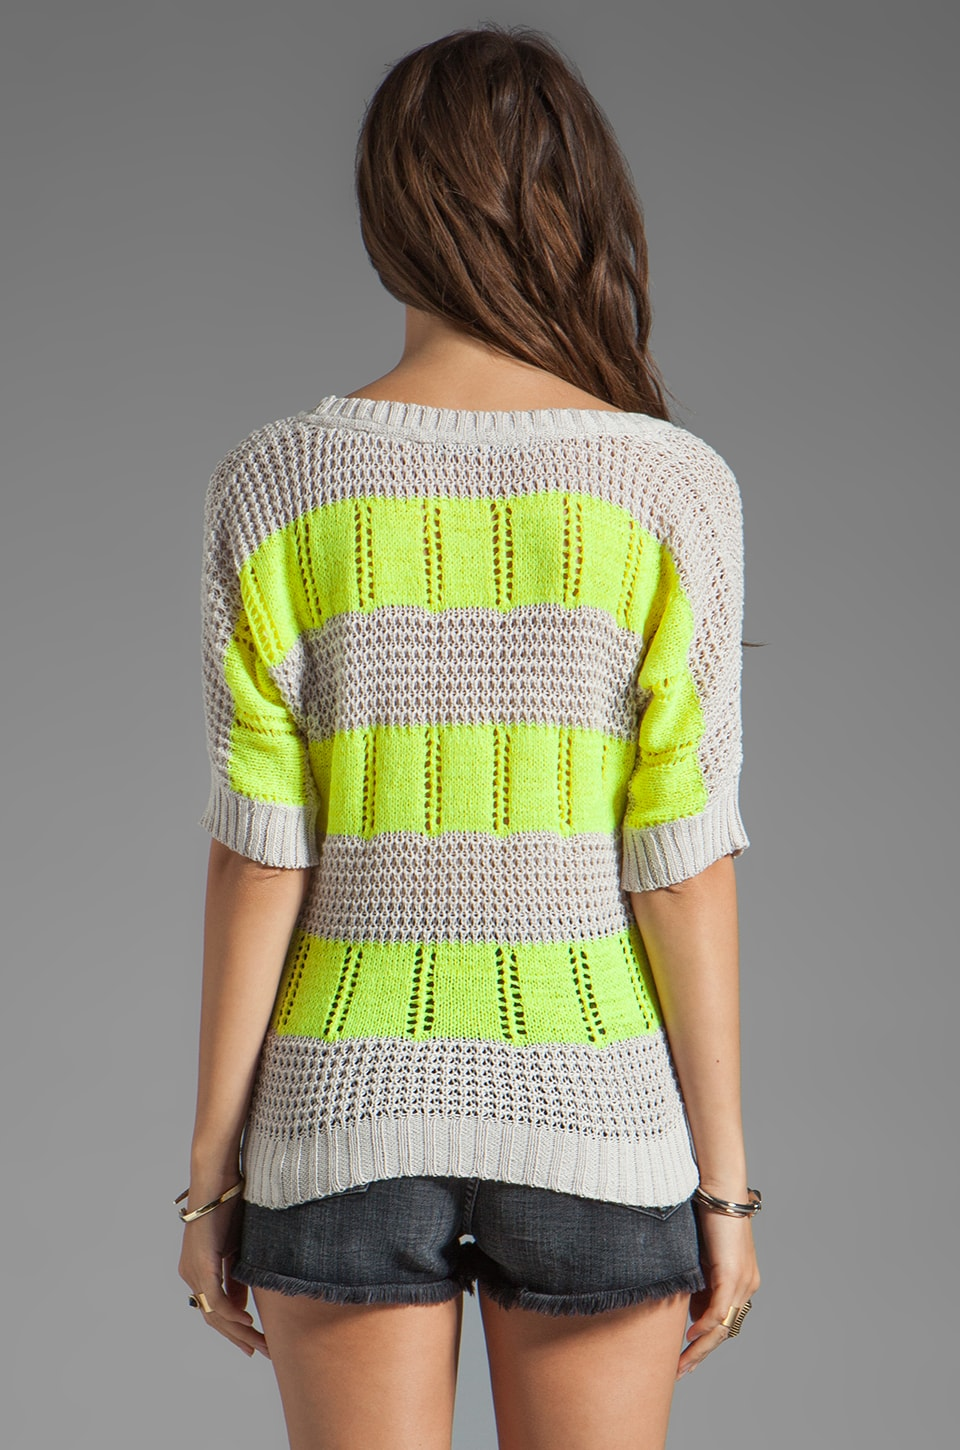 Ash-Rain-Oak Penny Knit Stripe Top in Oyster Stripe